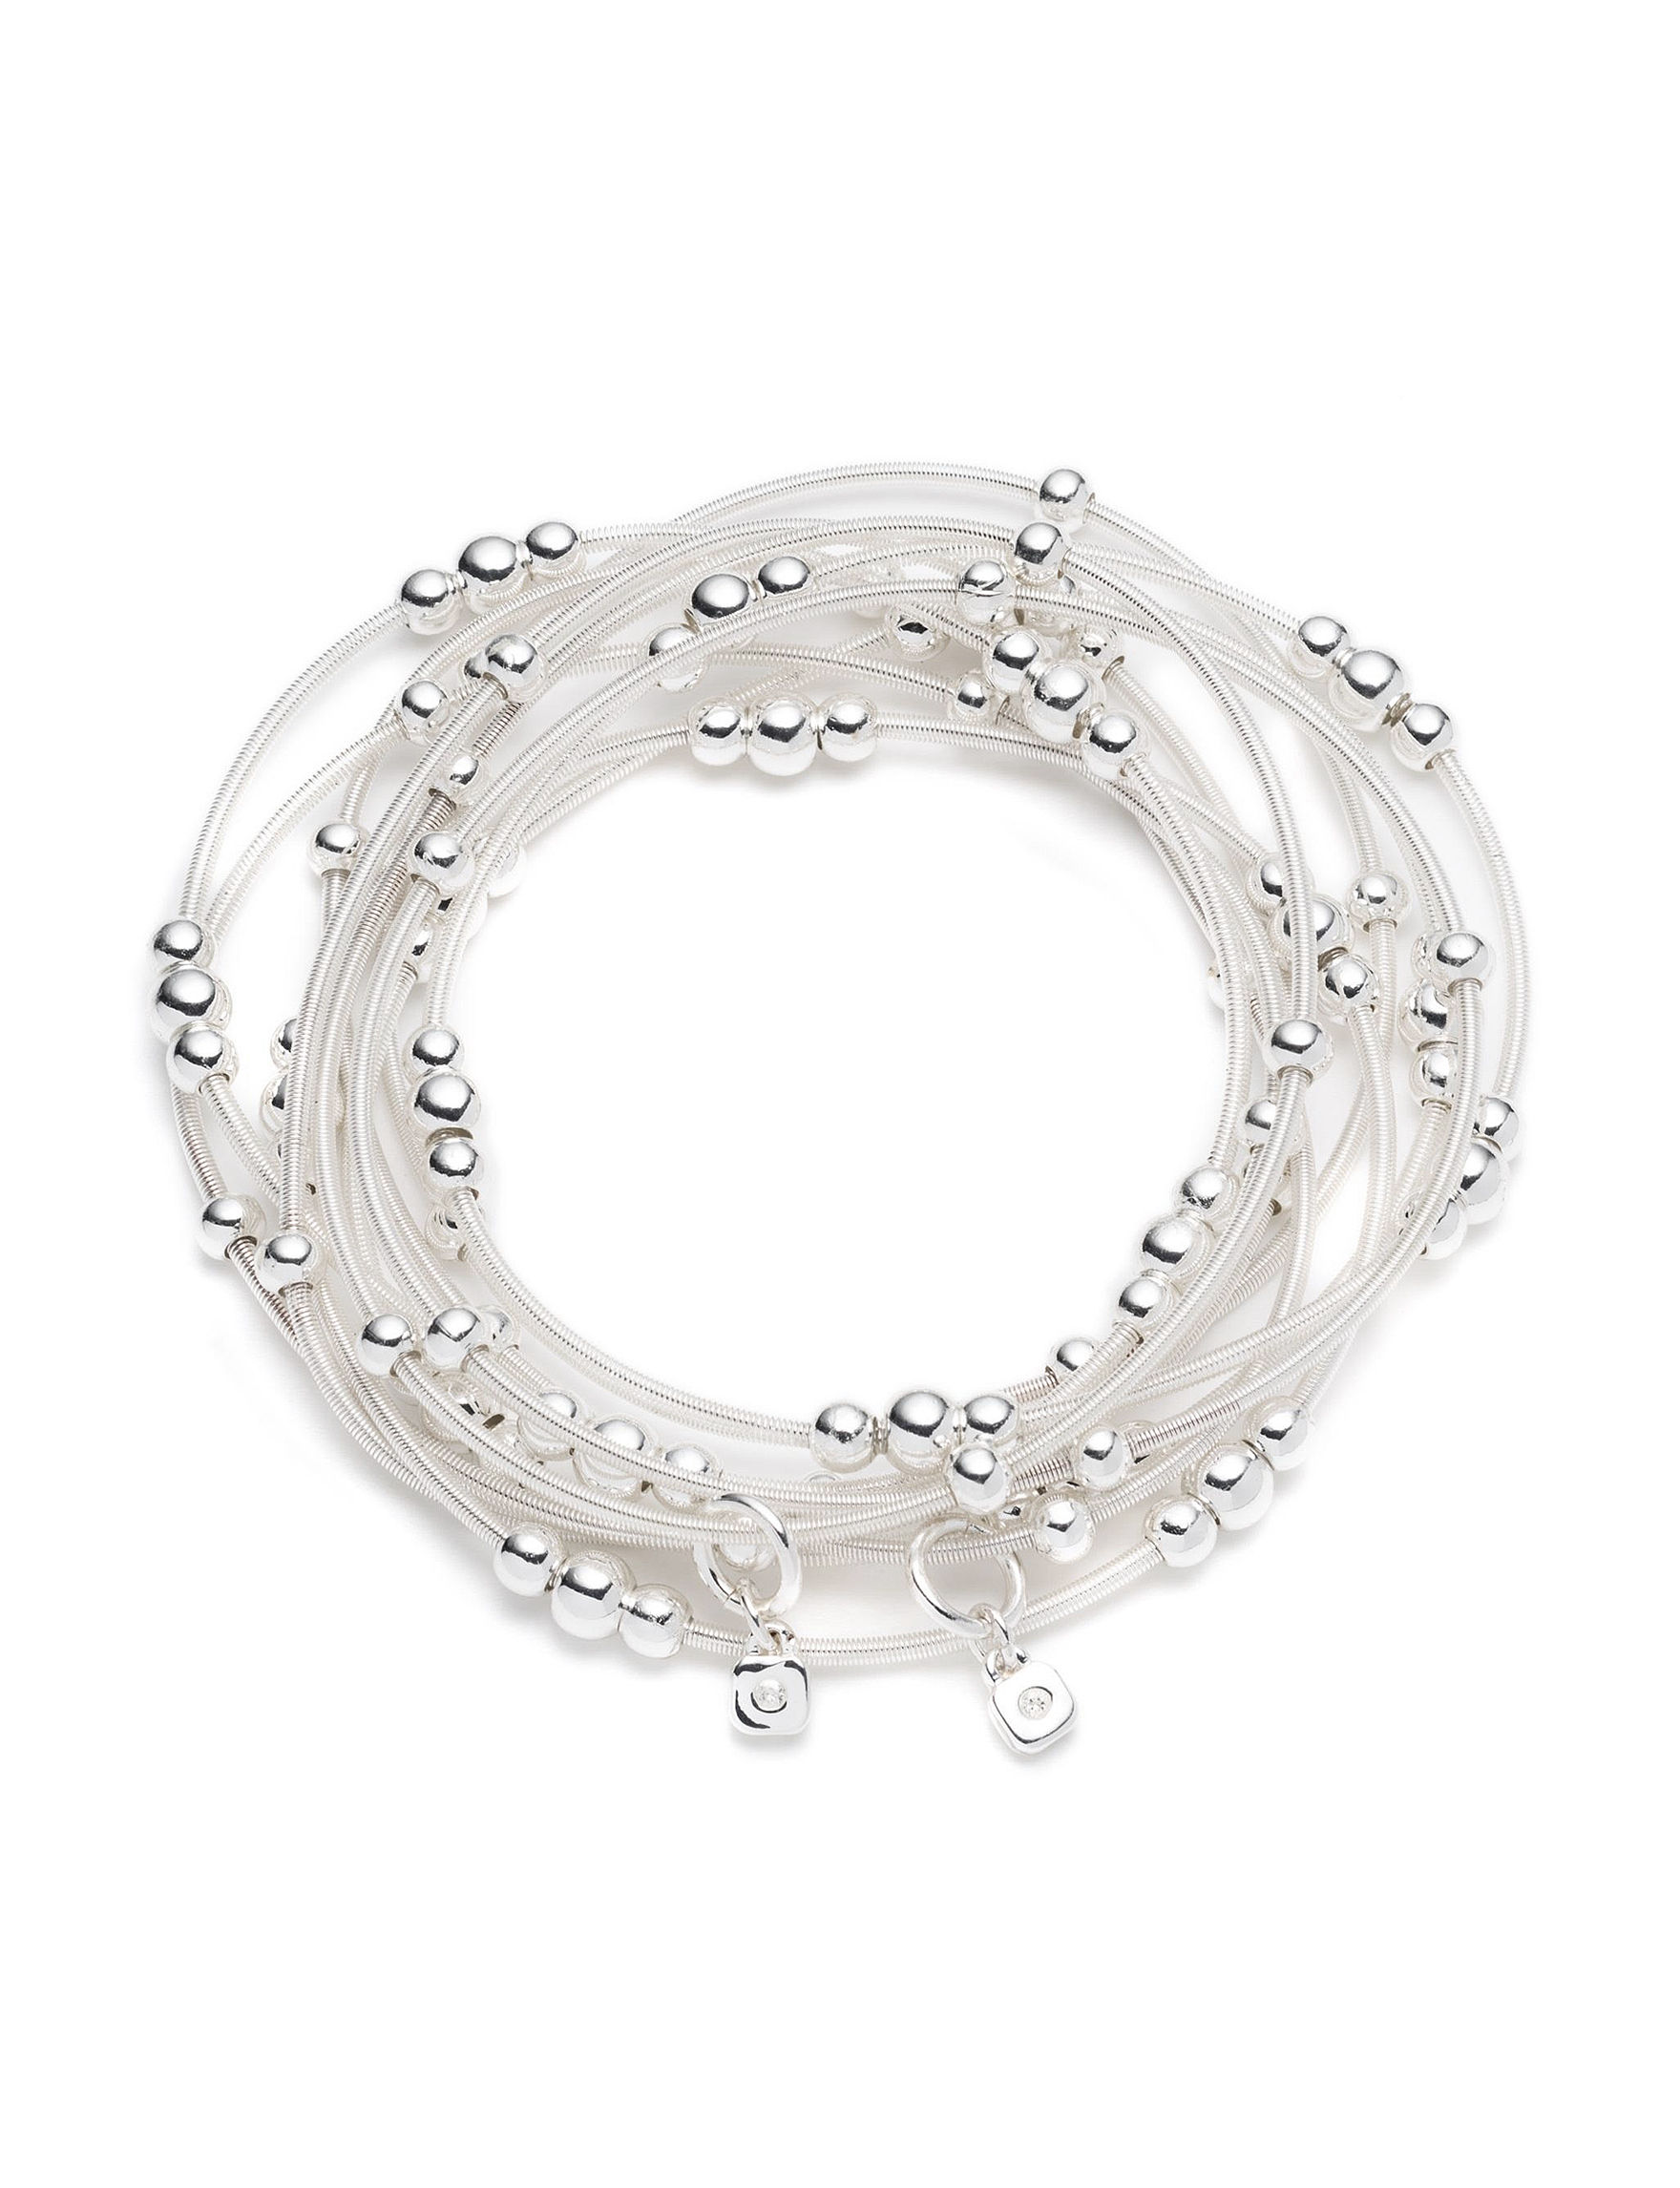 Nine West Silver Bracelets Fashion Jewelry